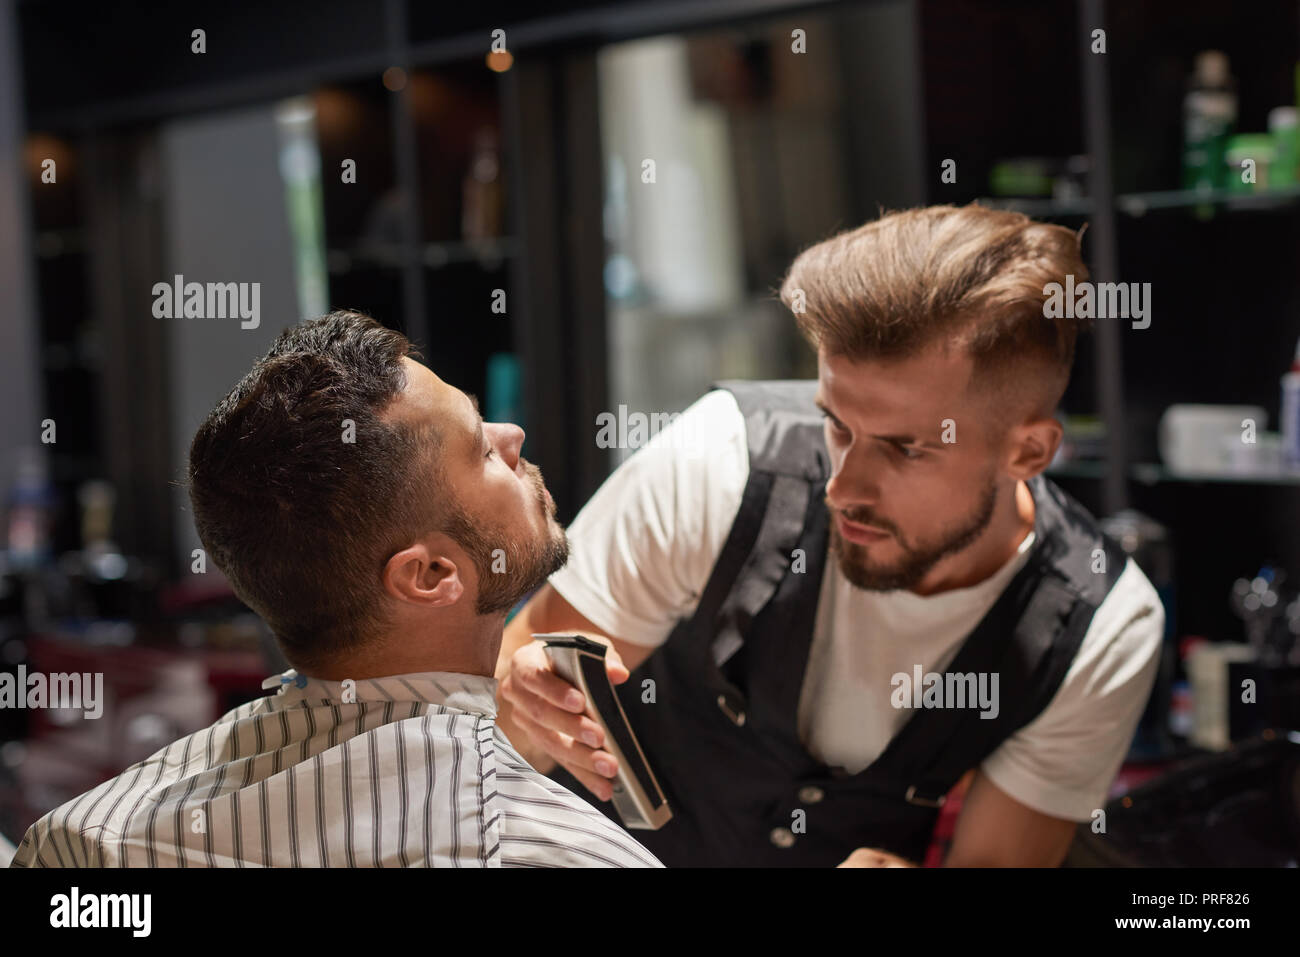 Concentrated and serious barber in white t shirt and vest holding trimmer. Handsome male hairdresser trimming client's beard. Bearded man sitting and holding head up.  - Stock Image